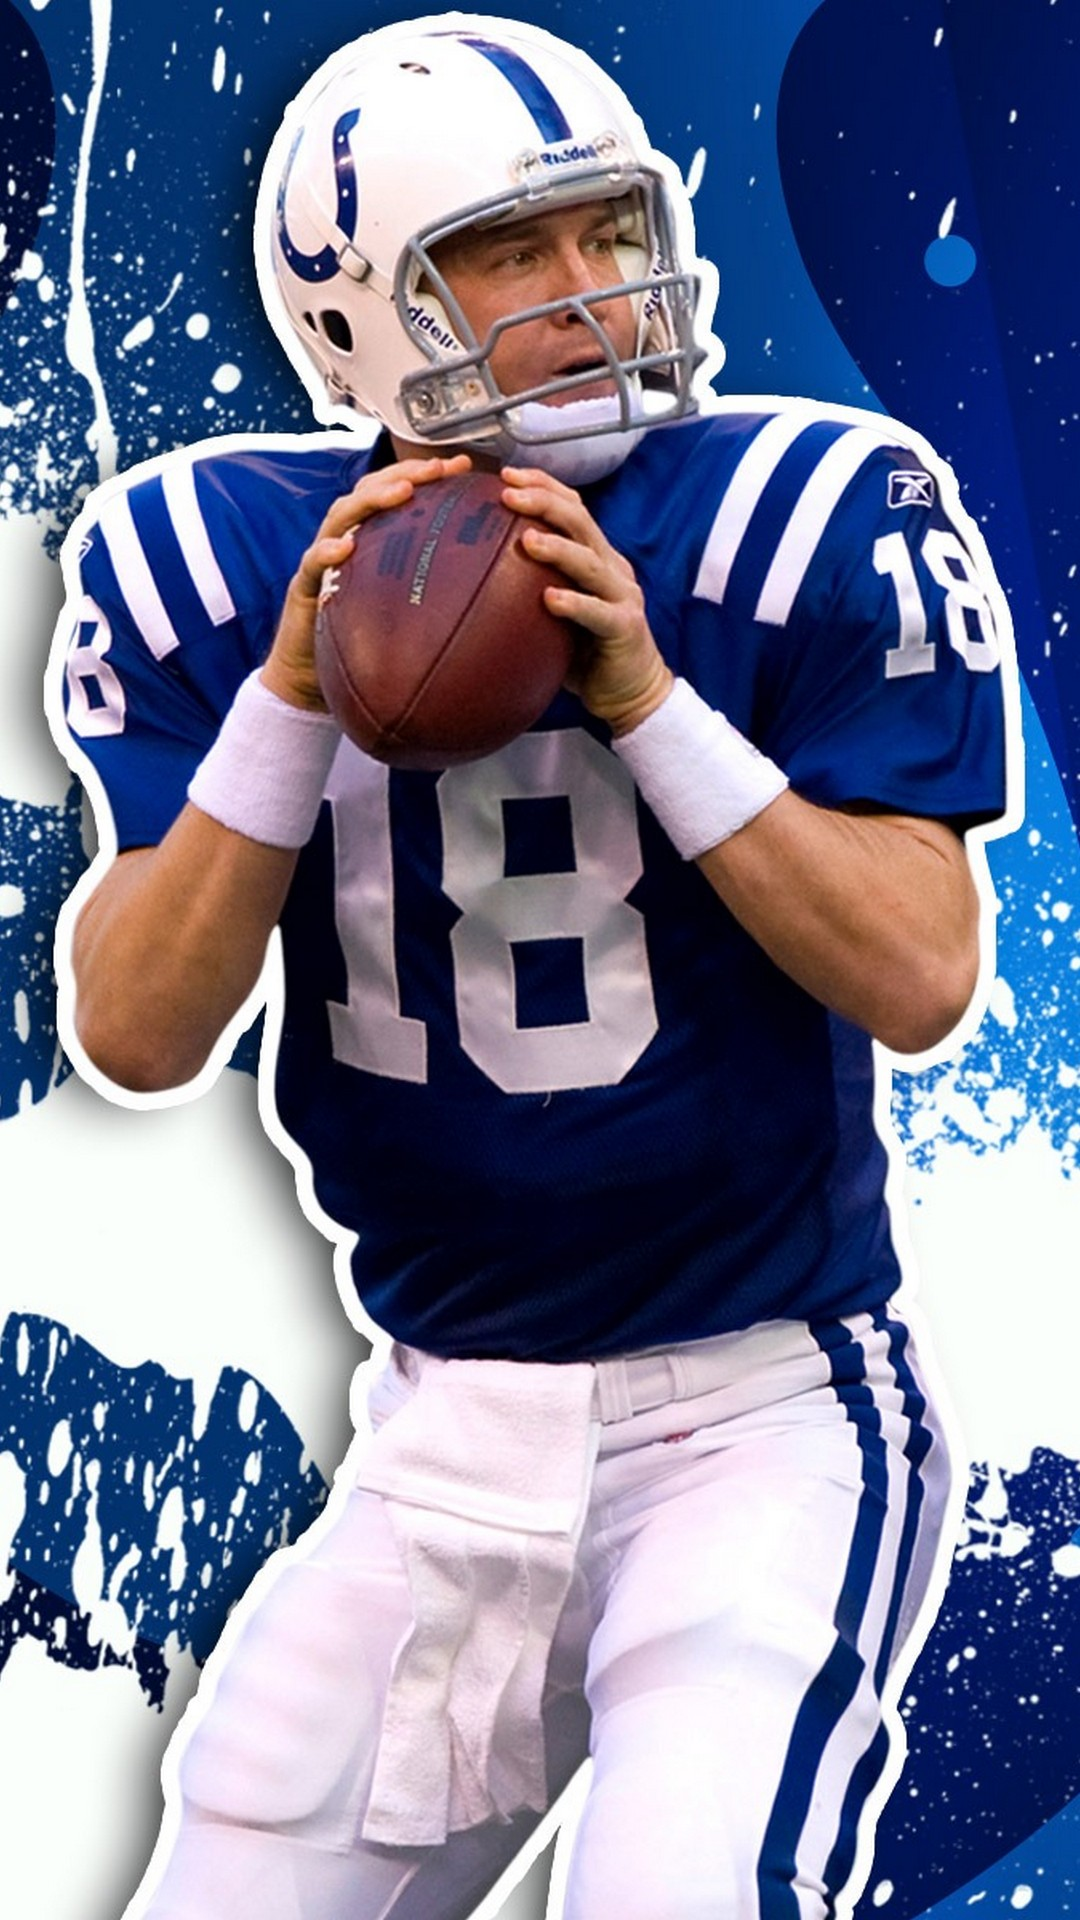 iPhone Wallpaper HD Peyton Manning Indianapolis Colts 2019 NFL 1080x1920